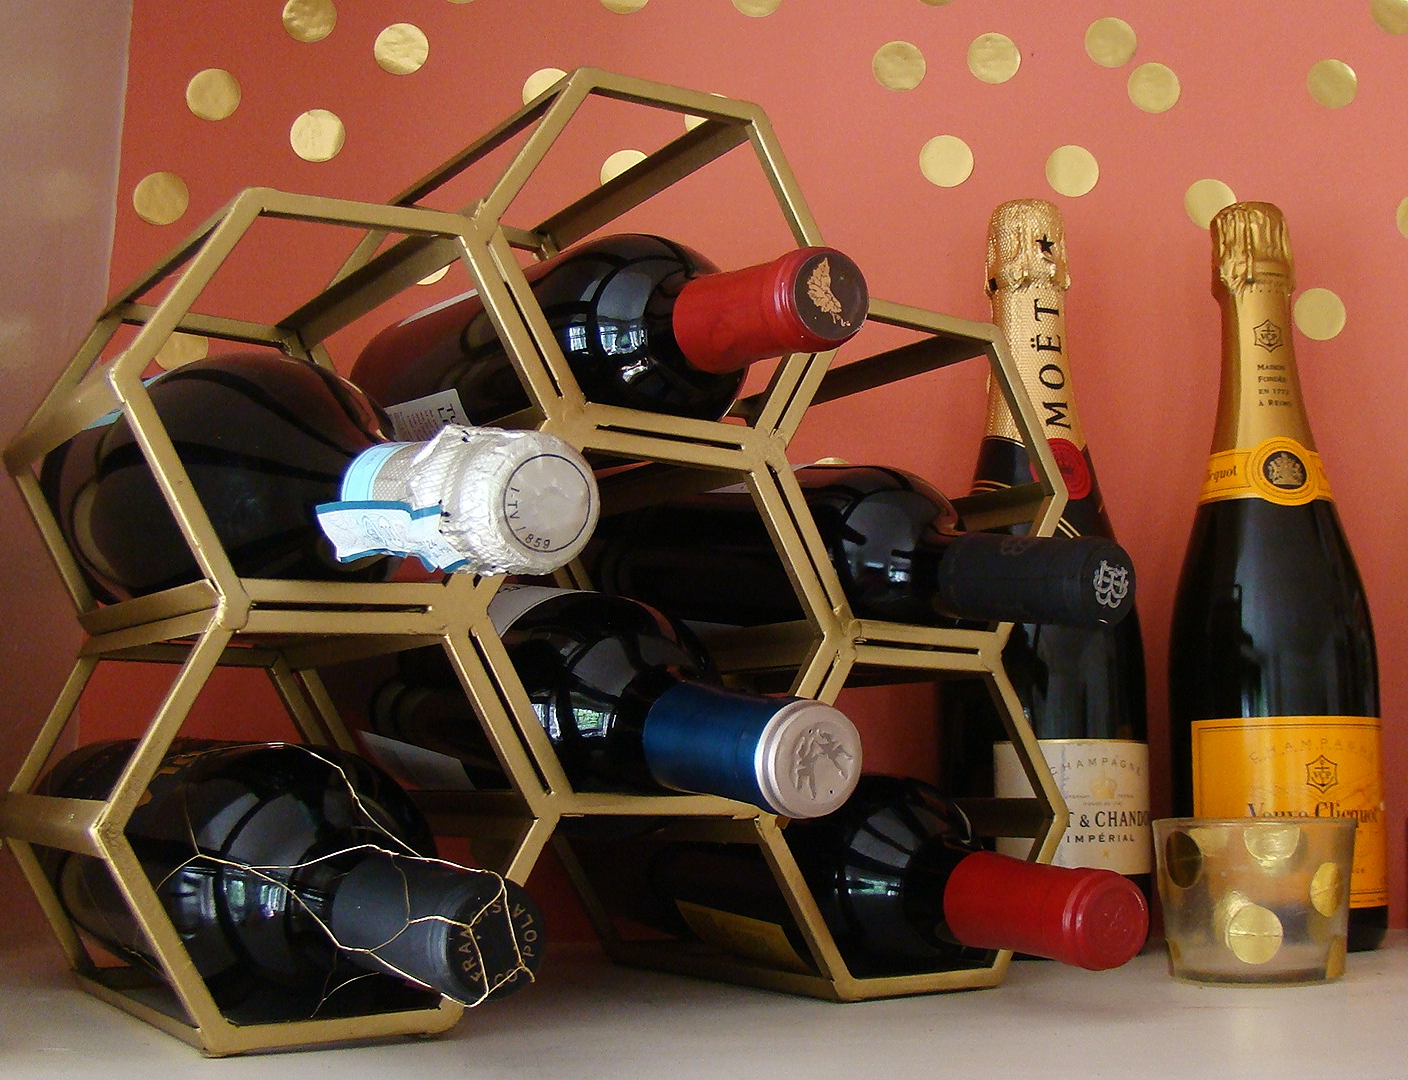 This neat architectural wine rack used to be black iron. Now look how glamorous it looks!